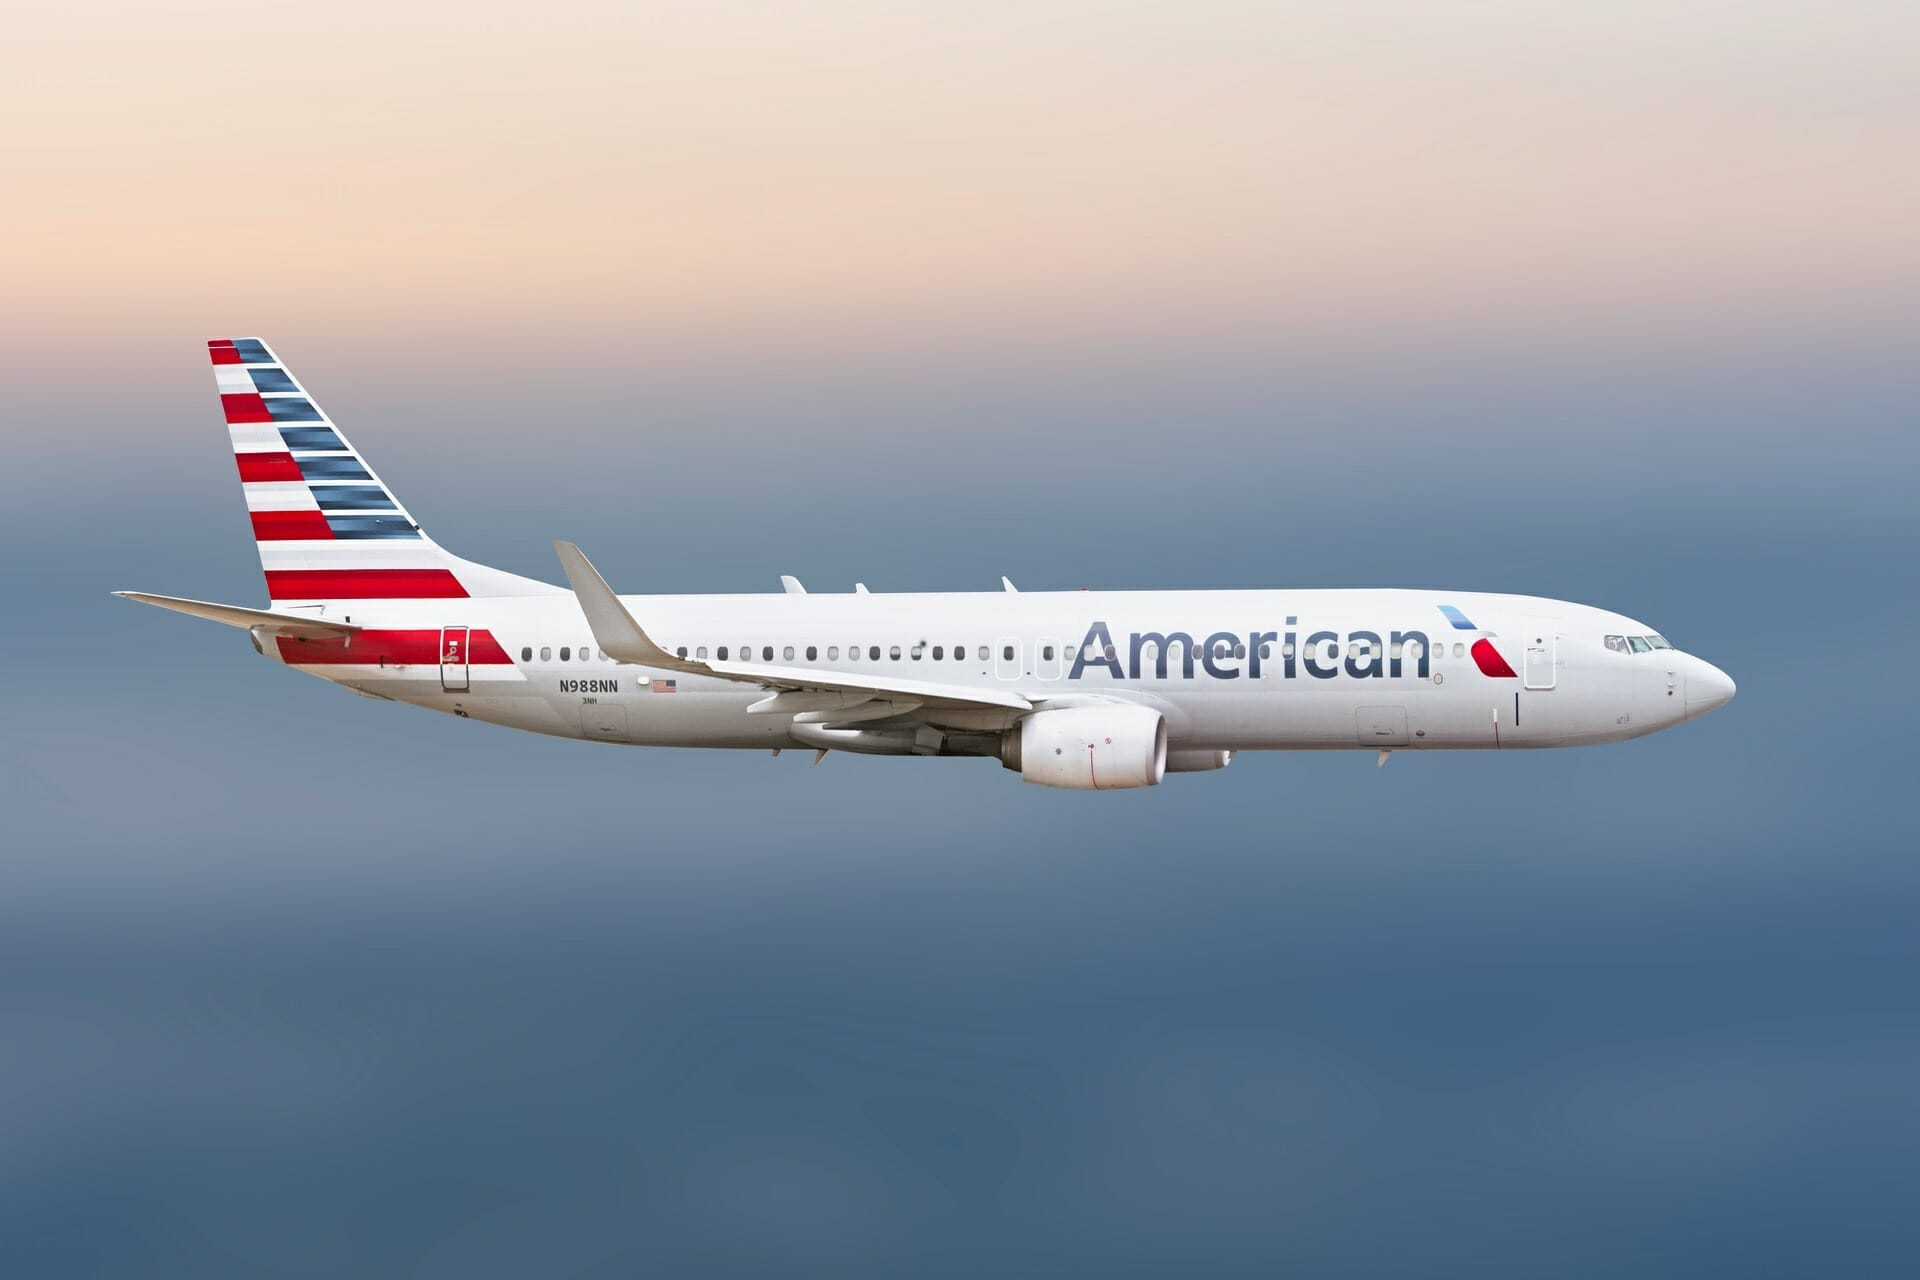 Credit card purchases can help you reach american airlines million miler status once again